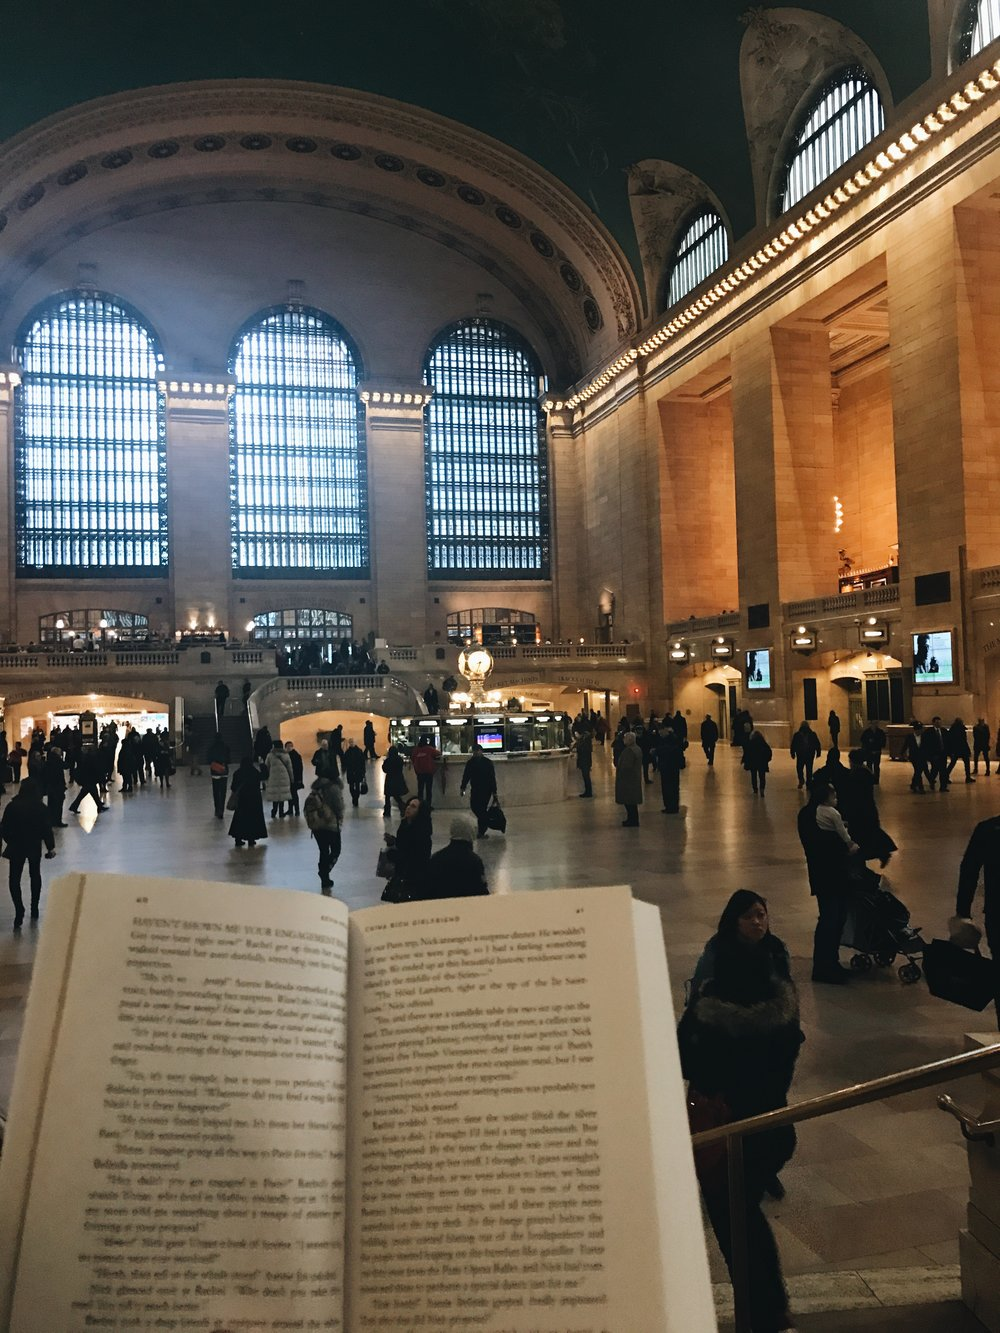 I often read on the steps of Grand Central Station before work and during lunch. I never get over the fact that I'm reading on the steps of Grand Central Station before work and during lunch.